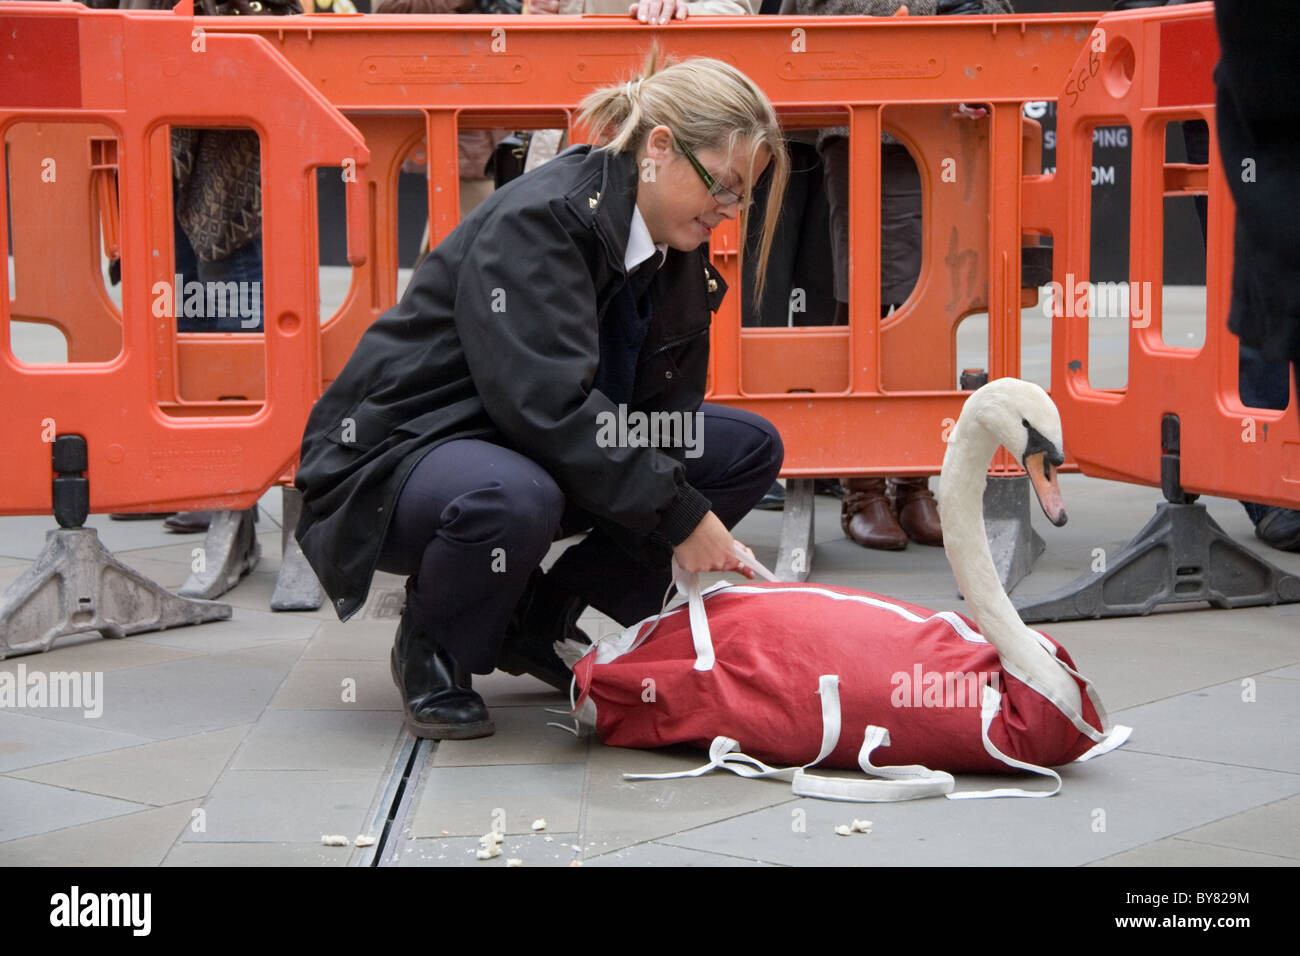 RSPCA animal protection officer rescuing a swan from Southmead shopping Centre, Bath, UK - Stock Image